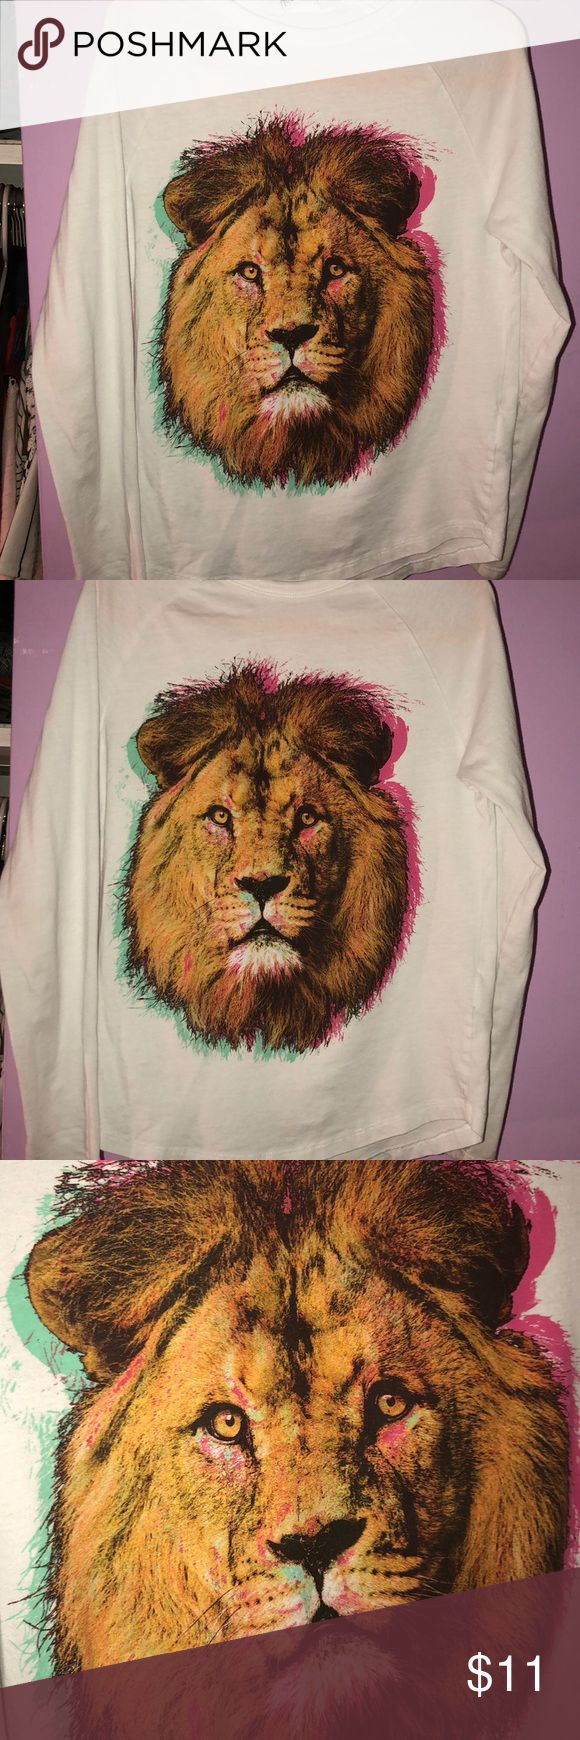 """""""King Lion"""" shirt Long sleeve lion shirt  Bright bold colors Gently worn Still in good condition H&M Shirts & Tops Tees - Long Sleeve"""